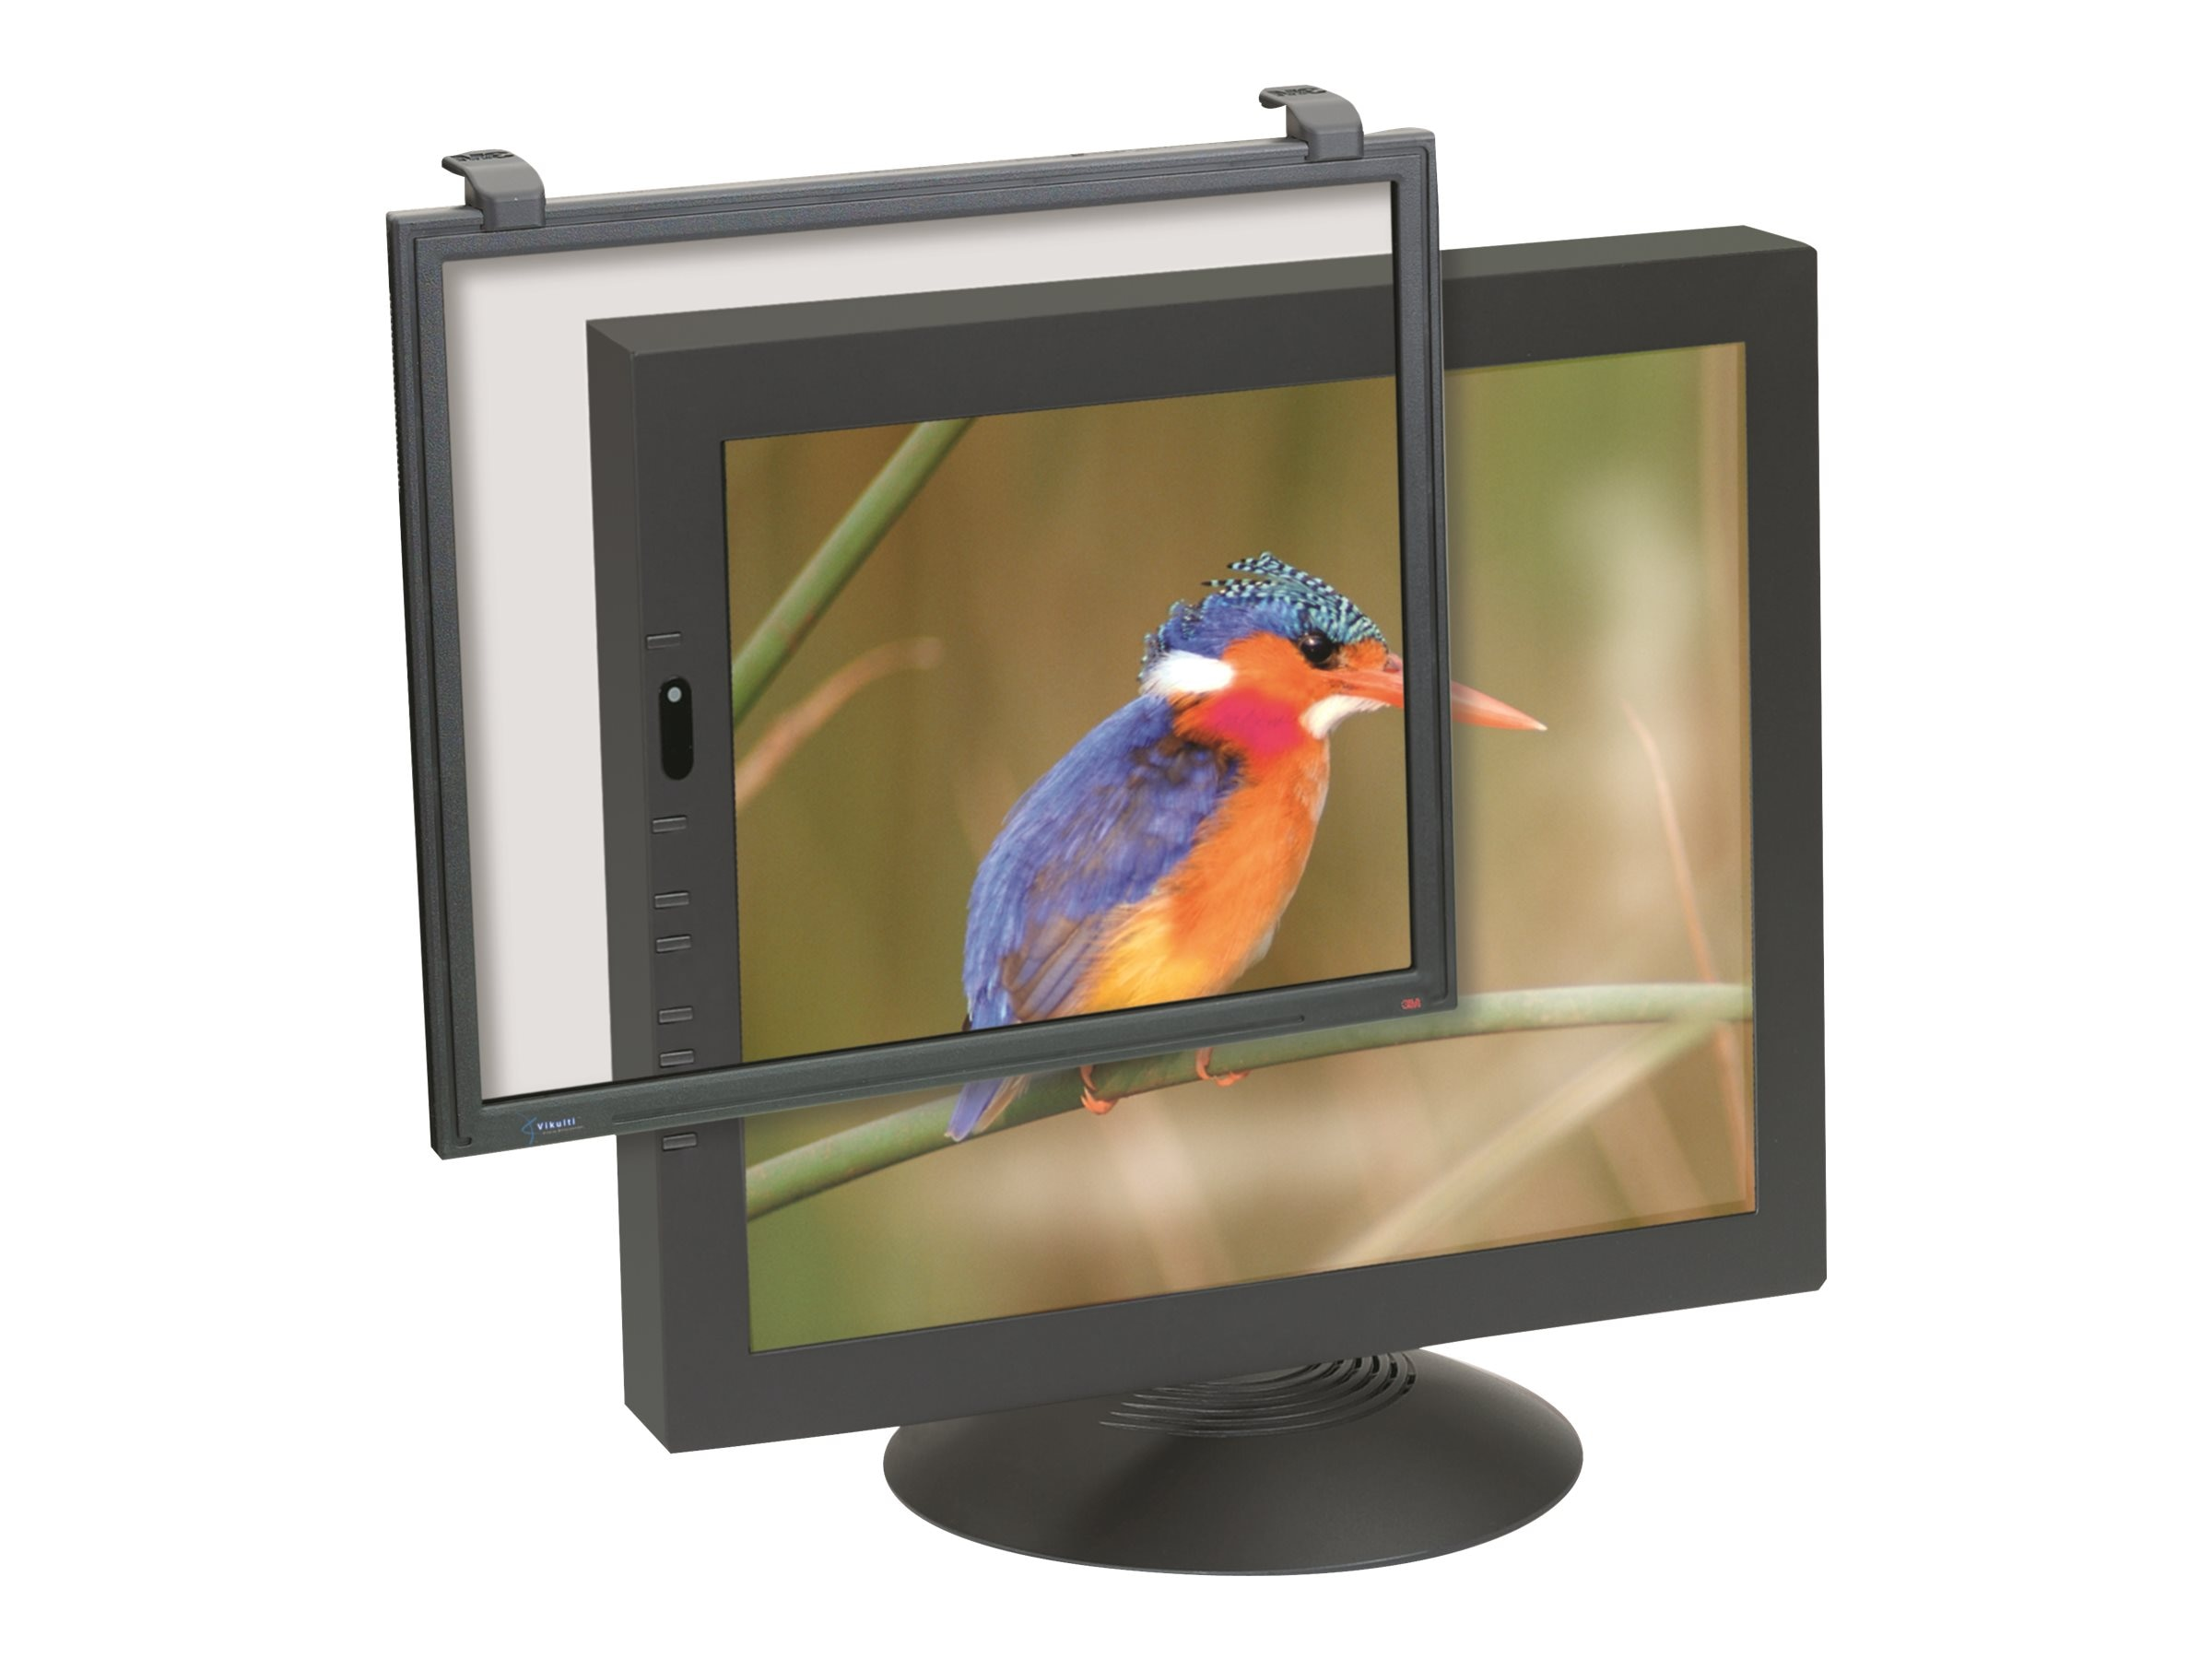 3M Executive Anti-Glare Glass Framed Filter for 17-18 5:4 Displays, EF180C4F